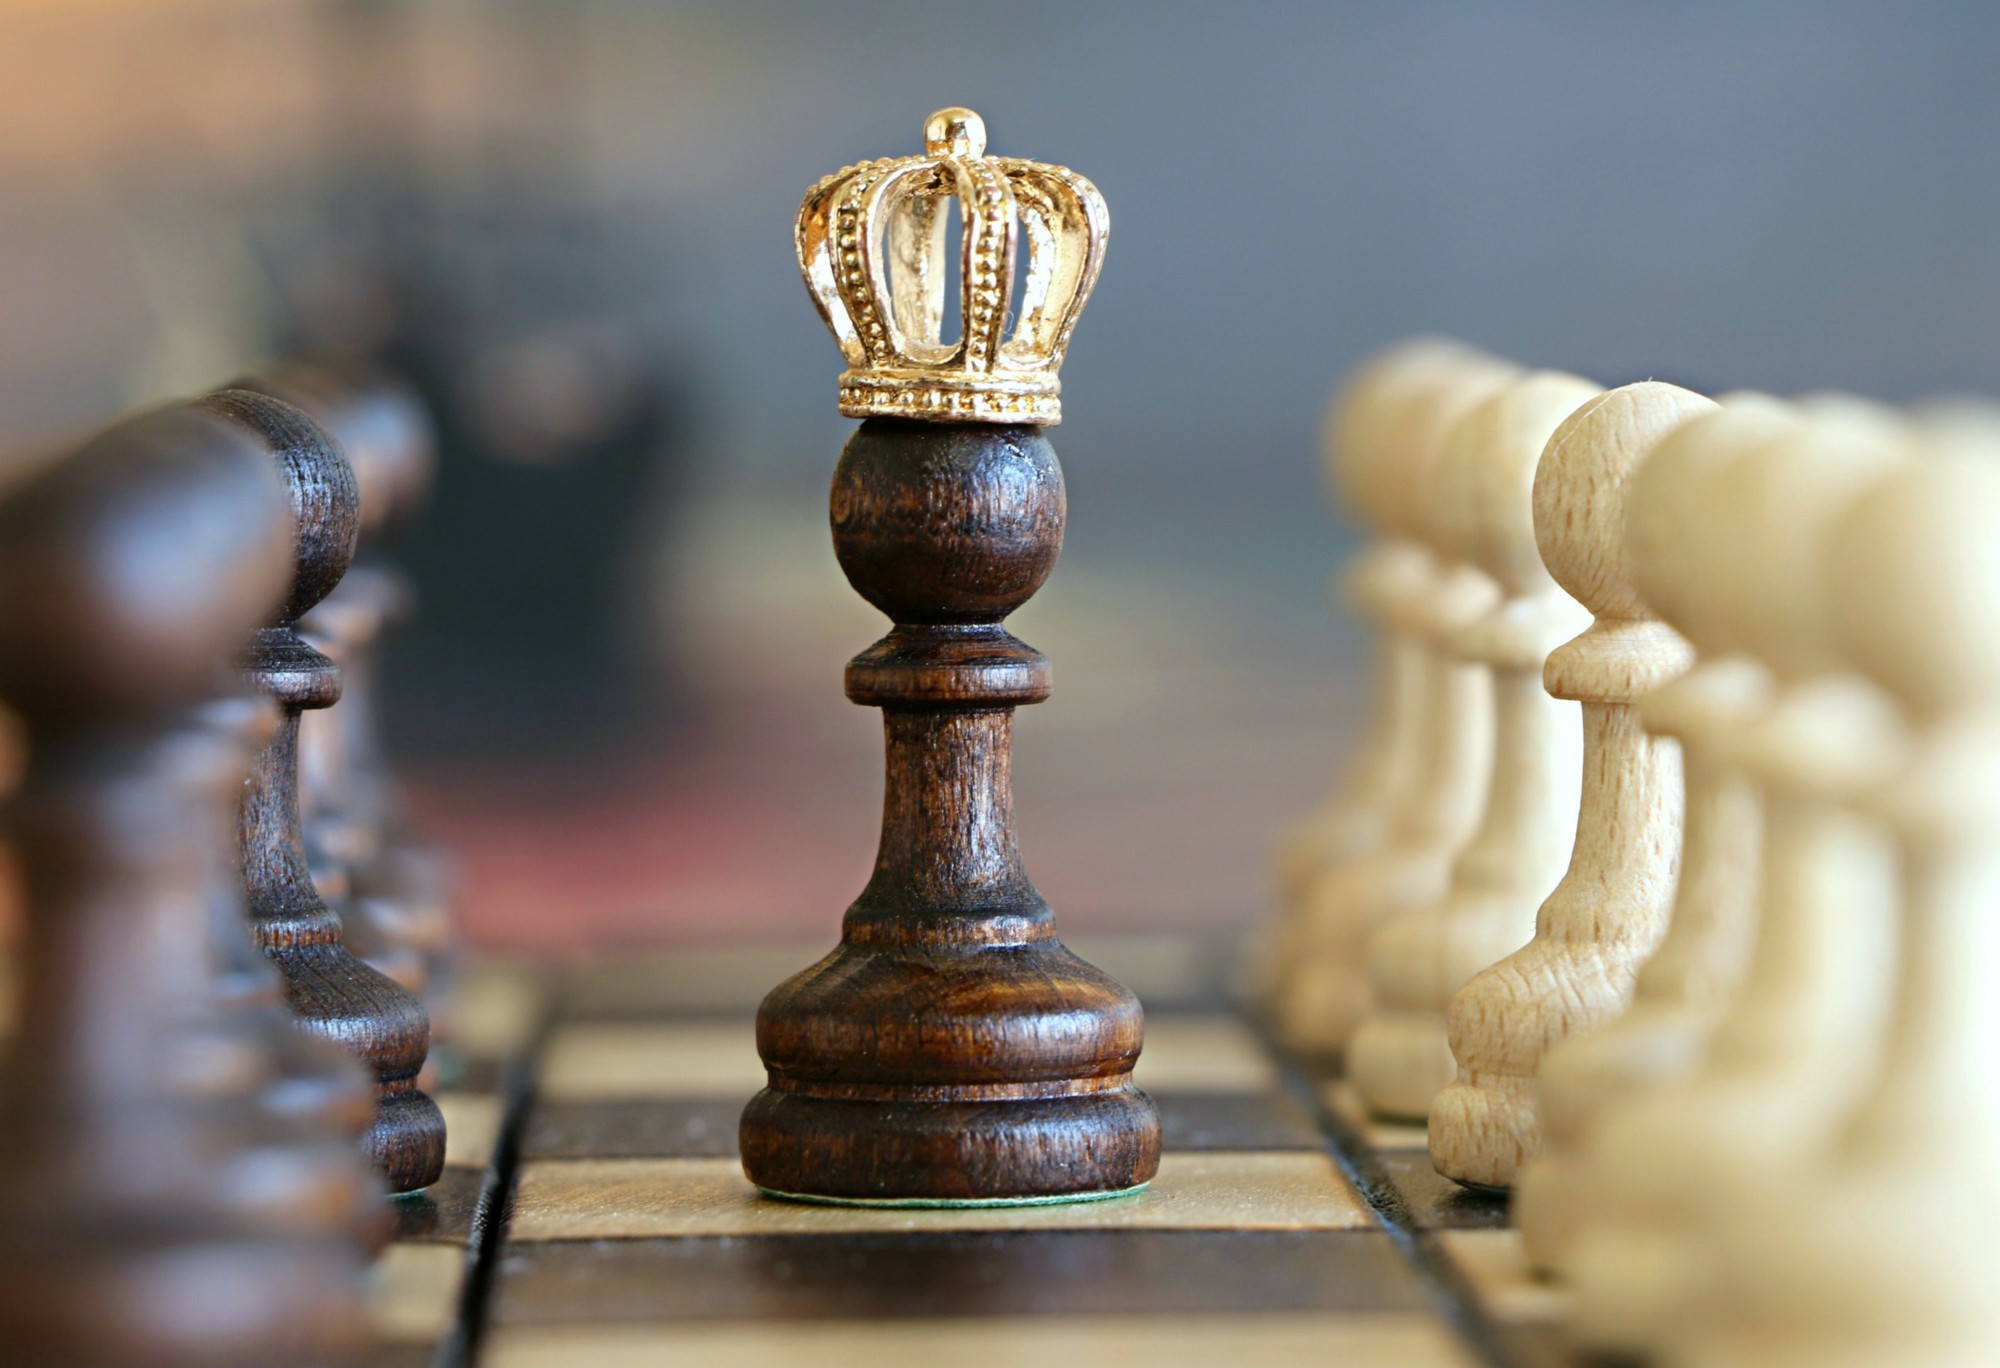 Chess pawn with a king crown 👑